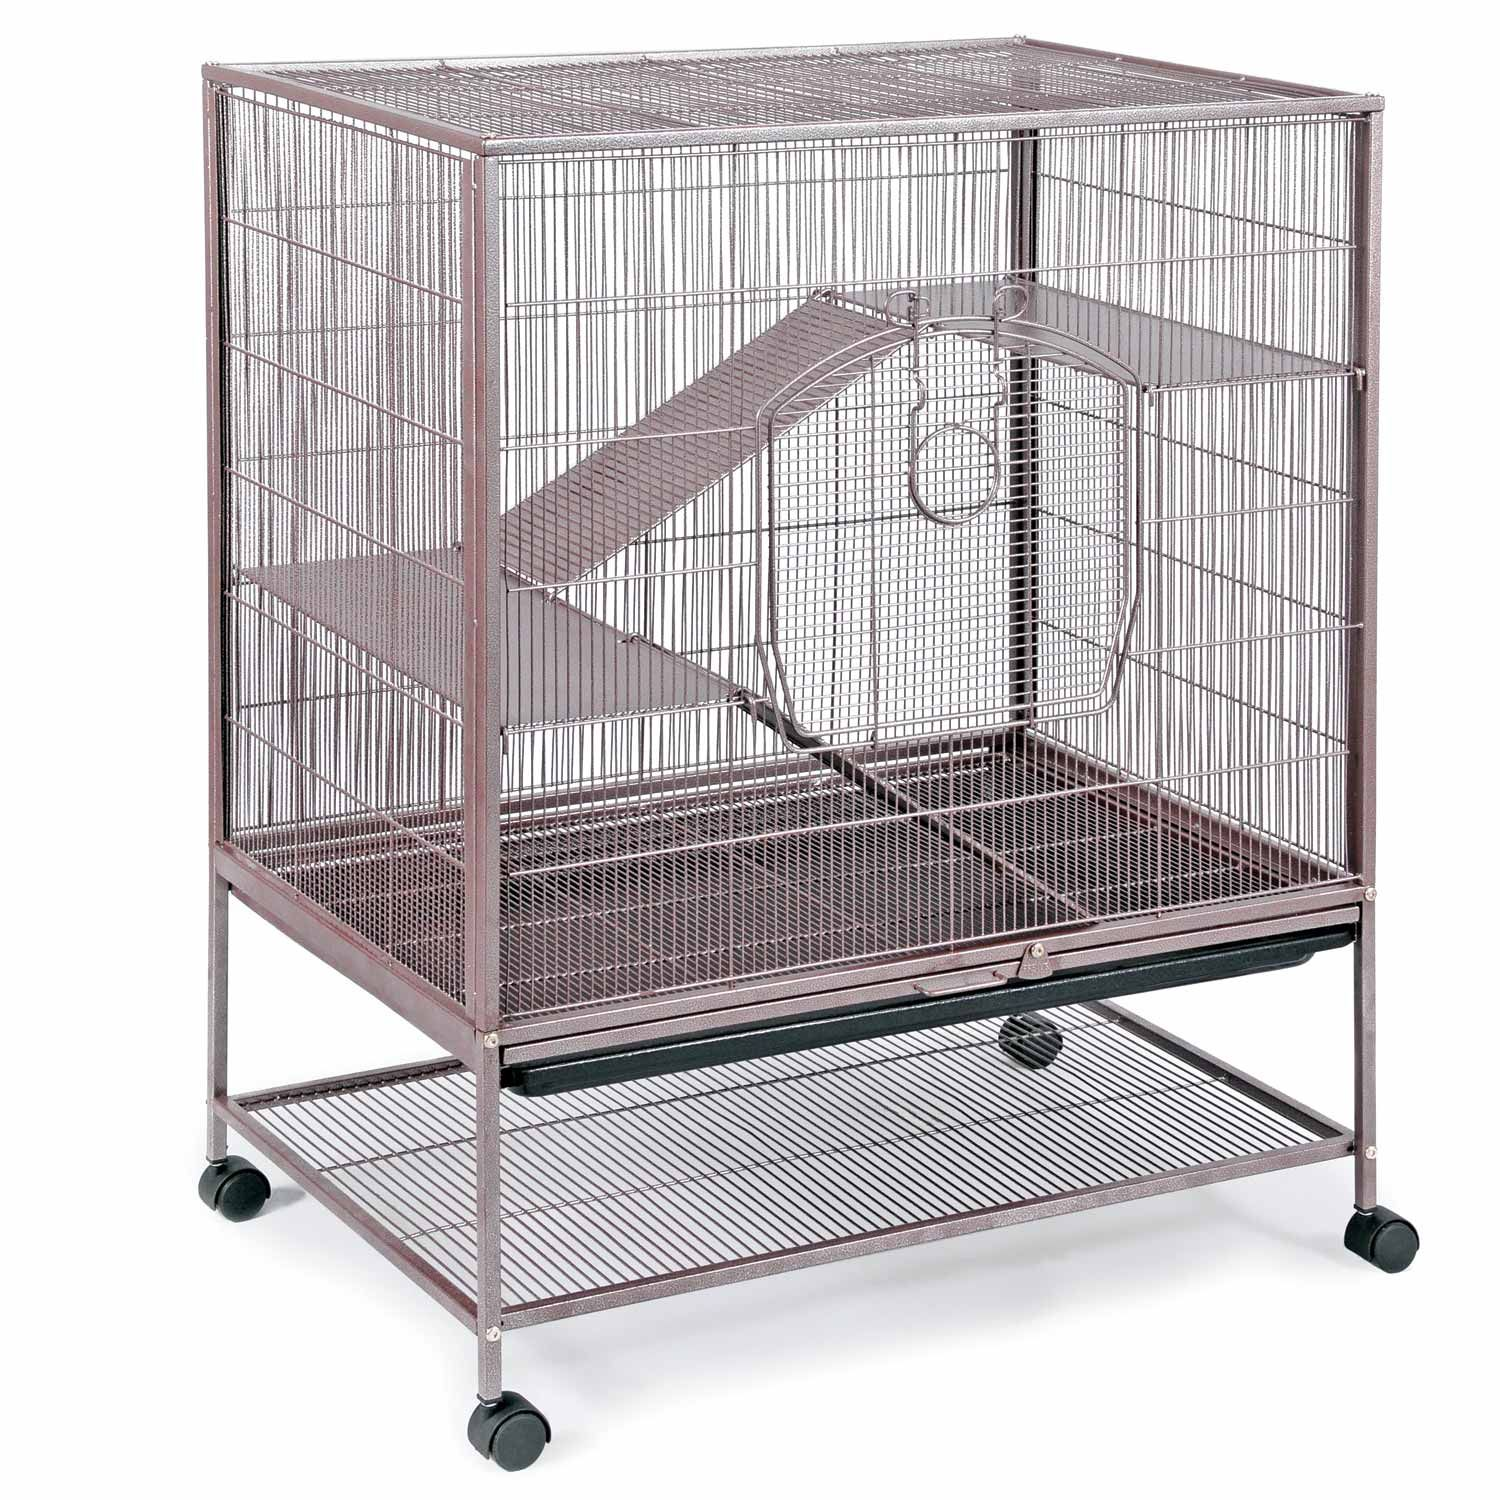 Prevue Pet Products Earthtone Dusted Rose Rat Chinchilla Cage Petco In 2020 Chinchilla Cage Small Animal Cage Pet Cage